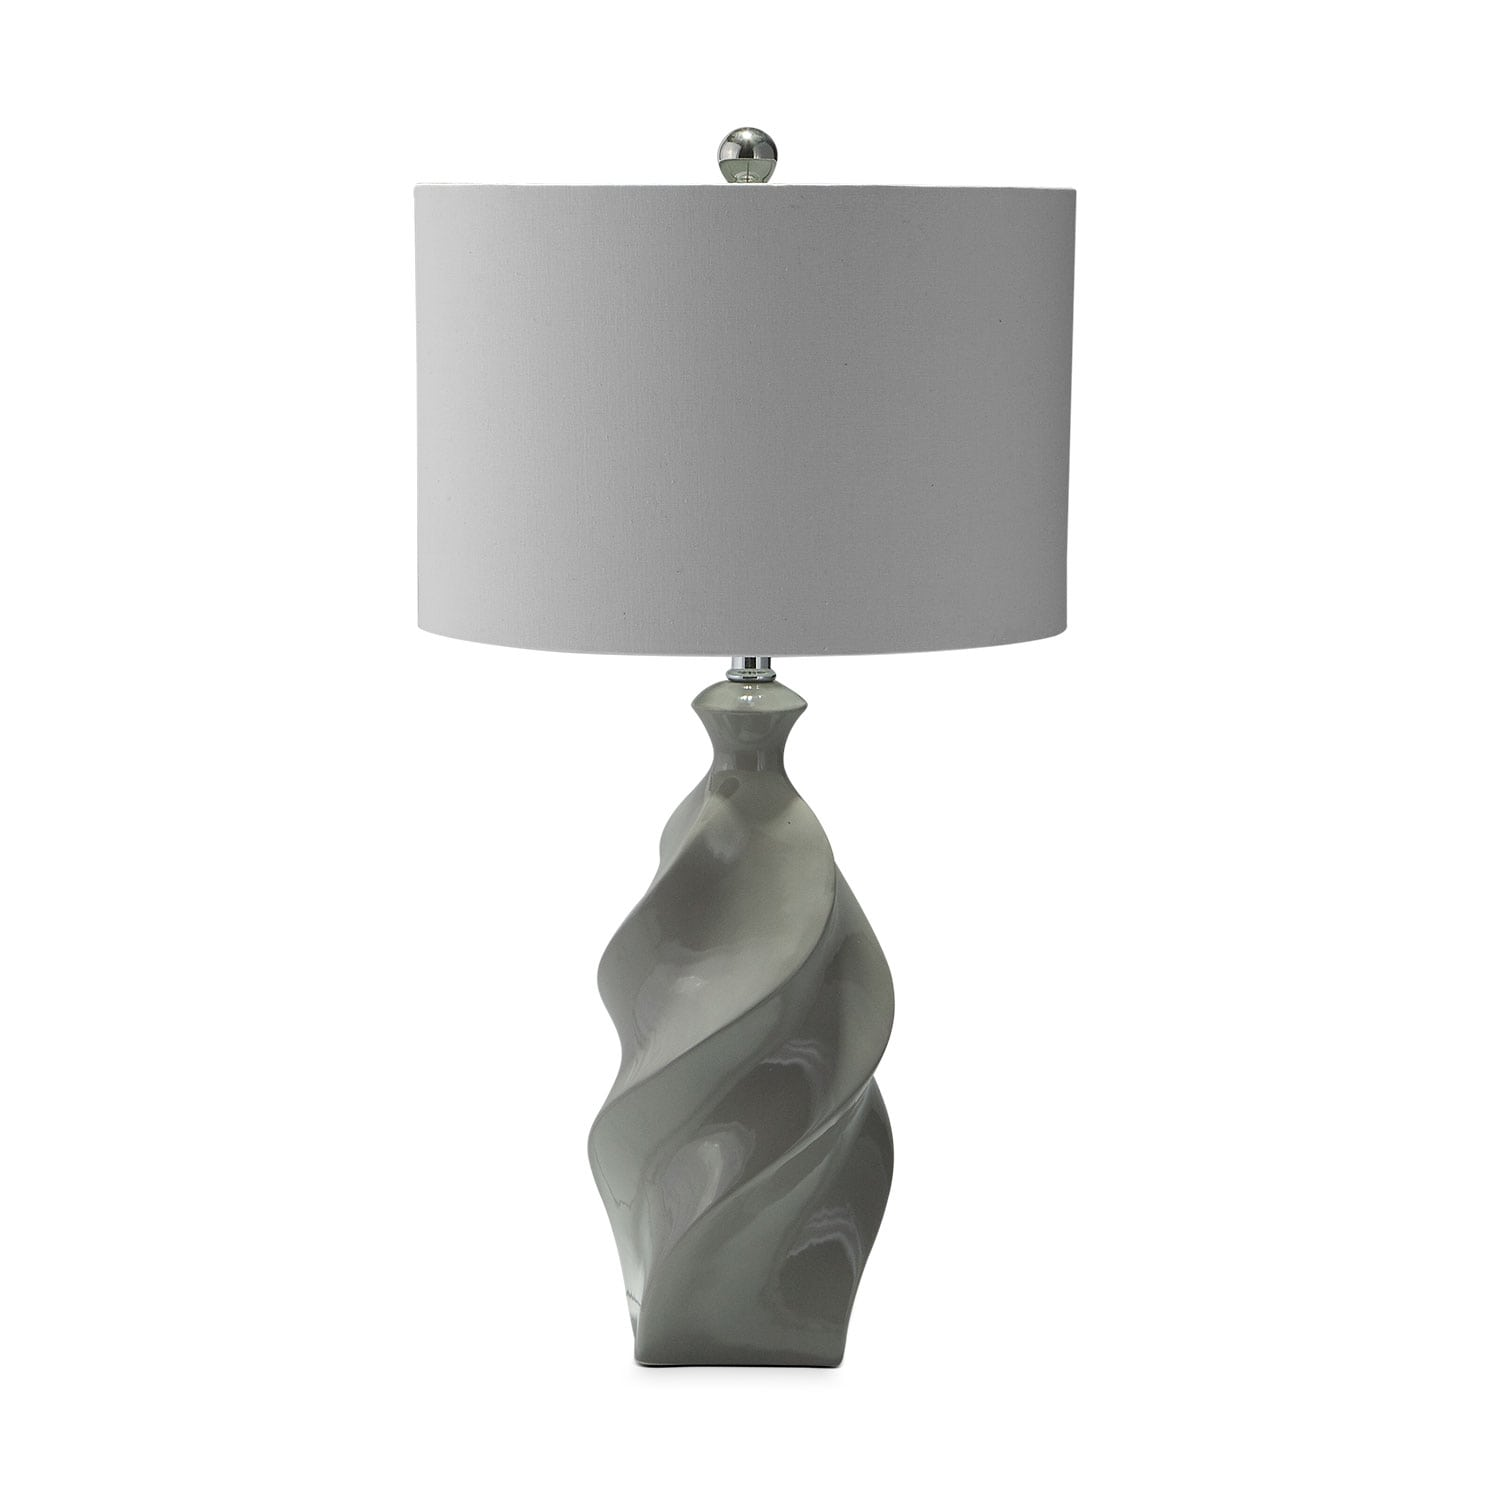 Home Accessories - Gray Ceramic Table Lamp